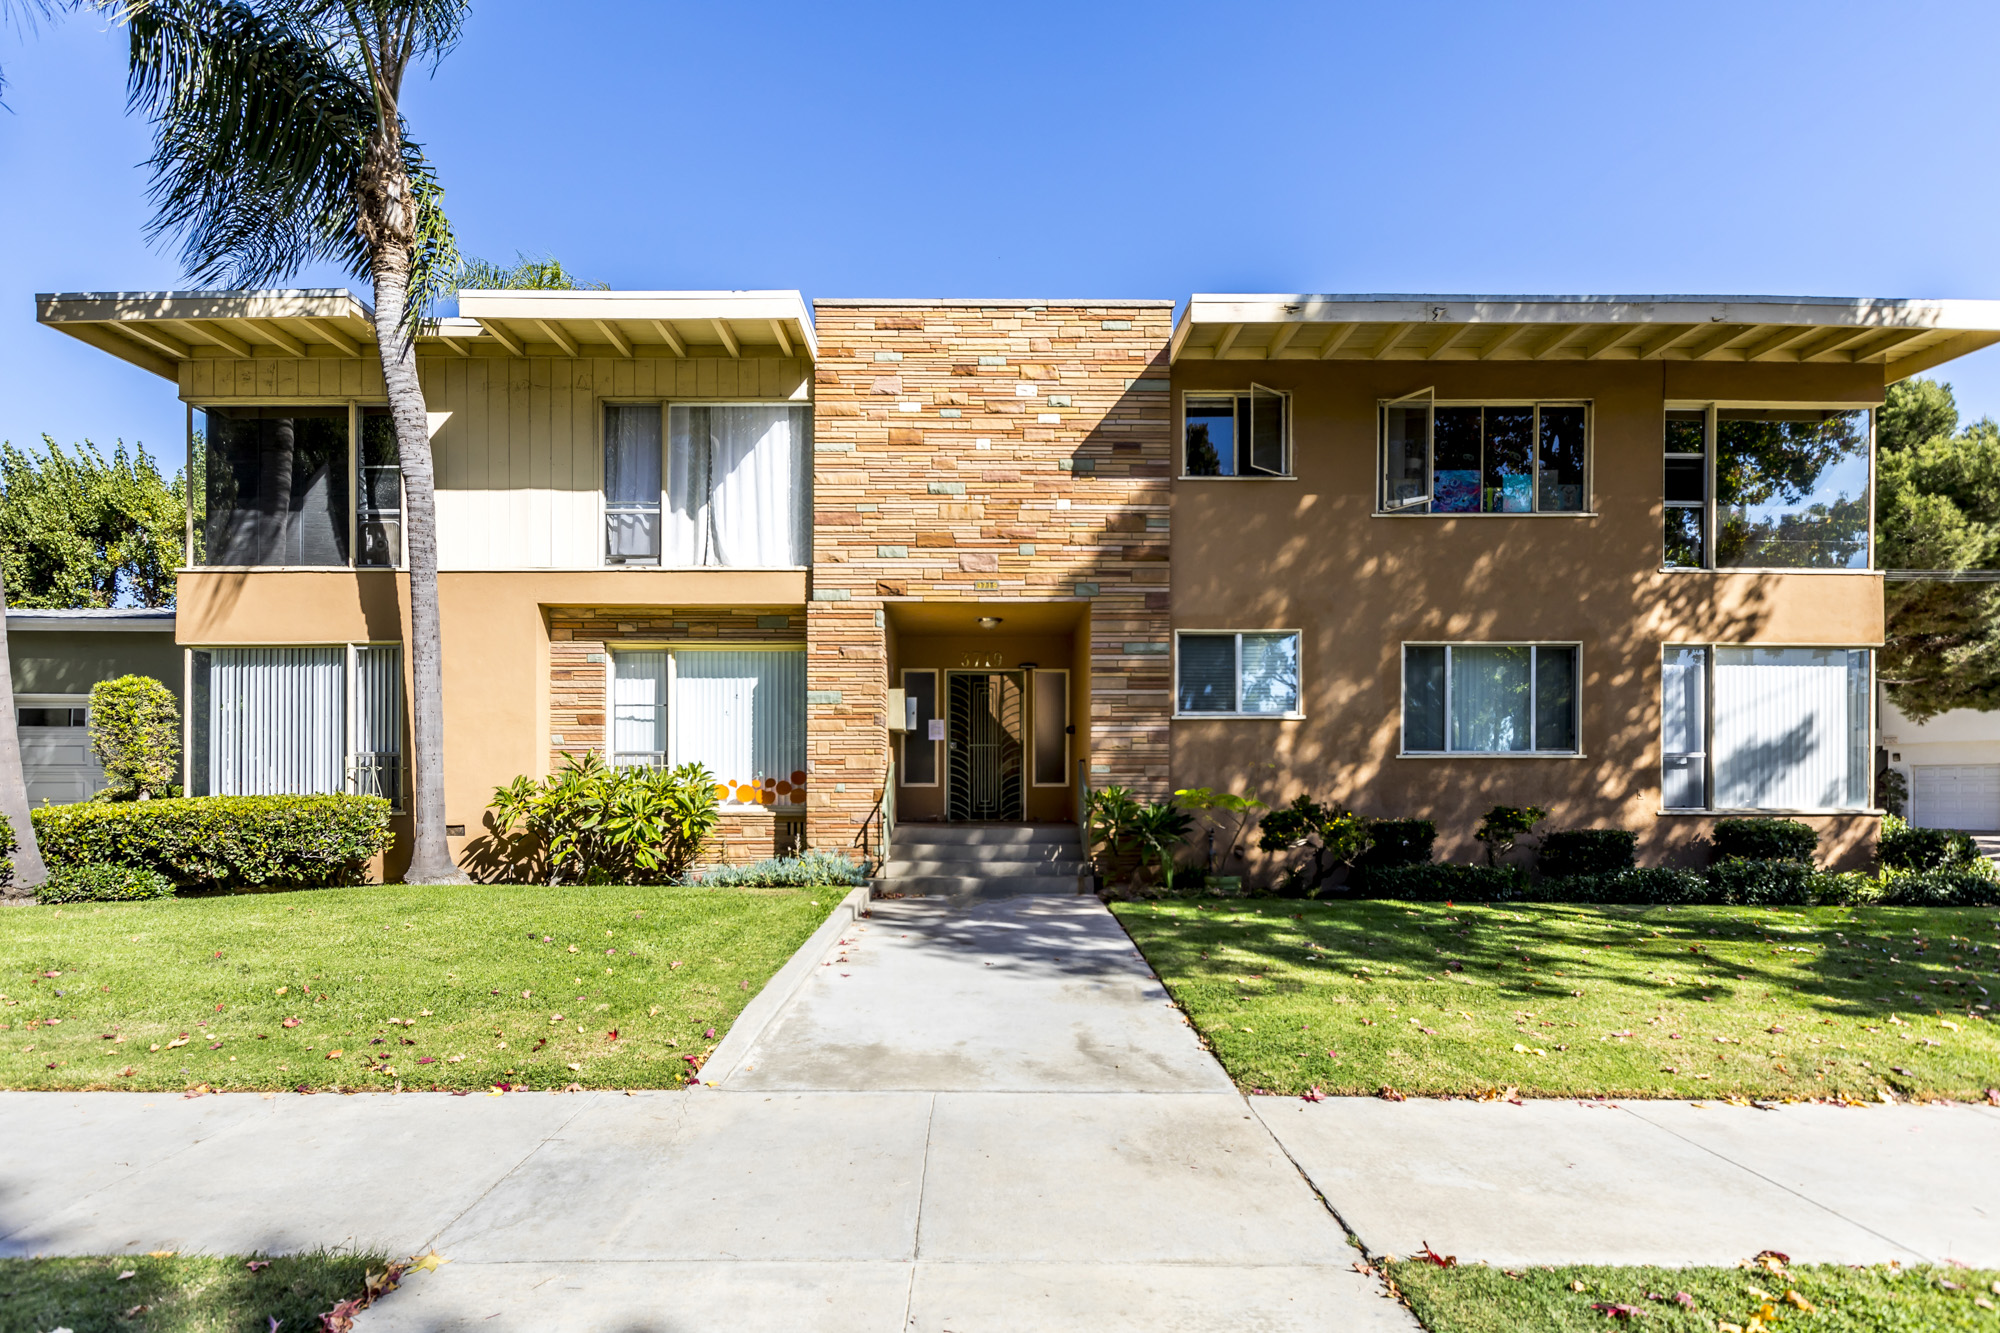 3719 East 1st St, Long Beach, CA 90803